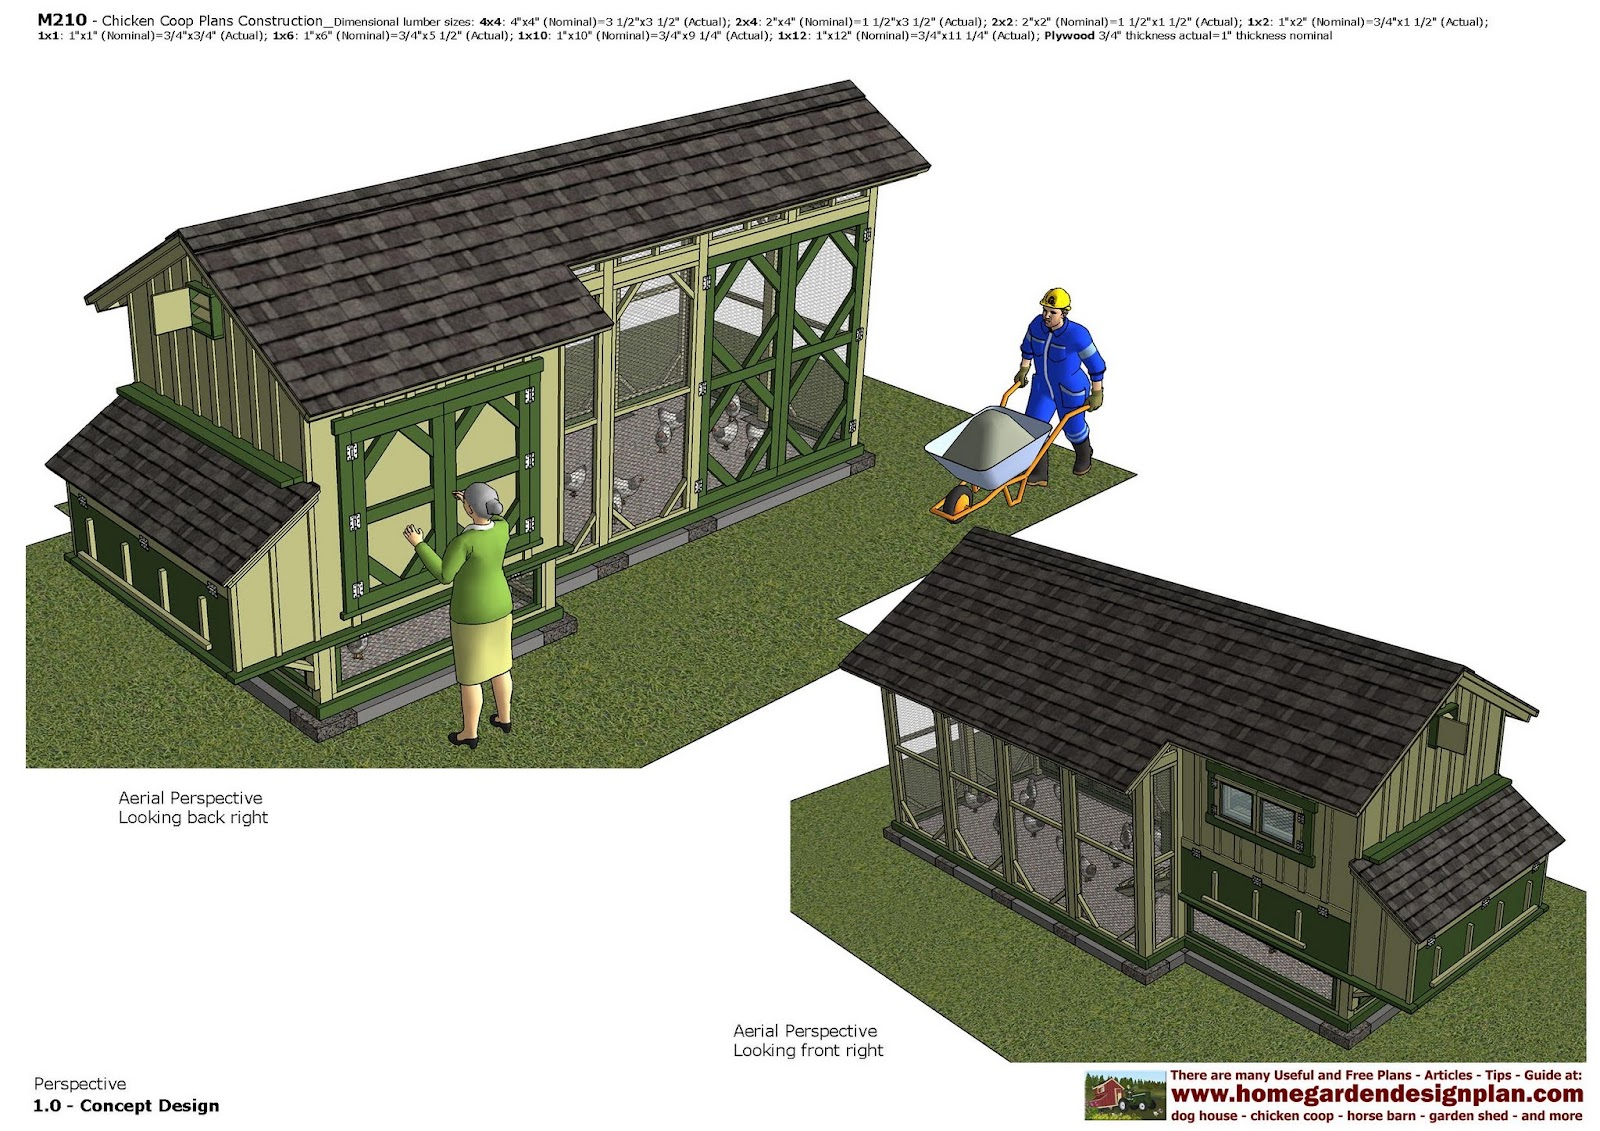 M210 - Chicken Coop Plans Construction - How To Build A Chicken Coop